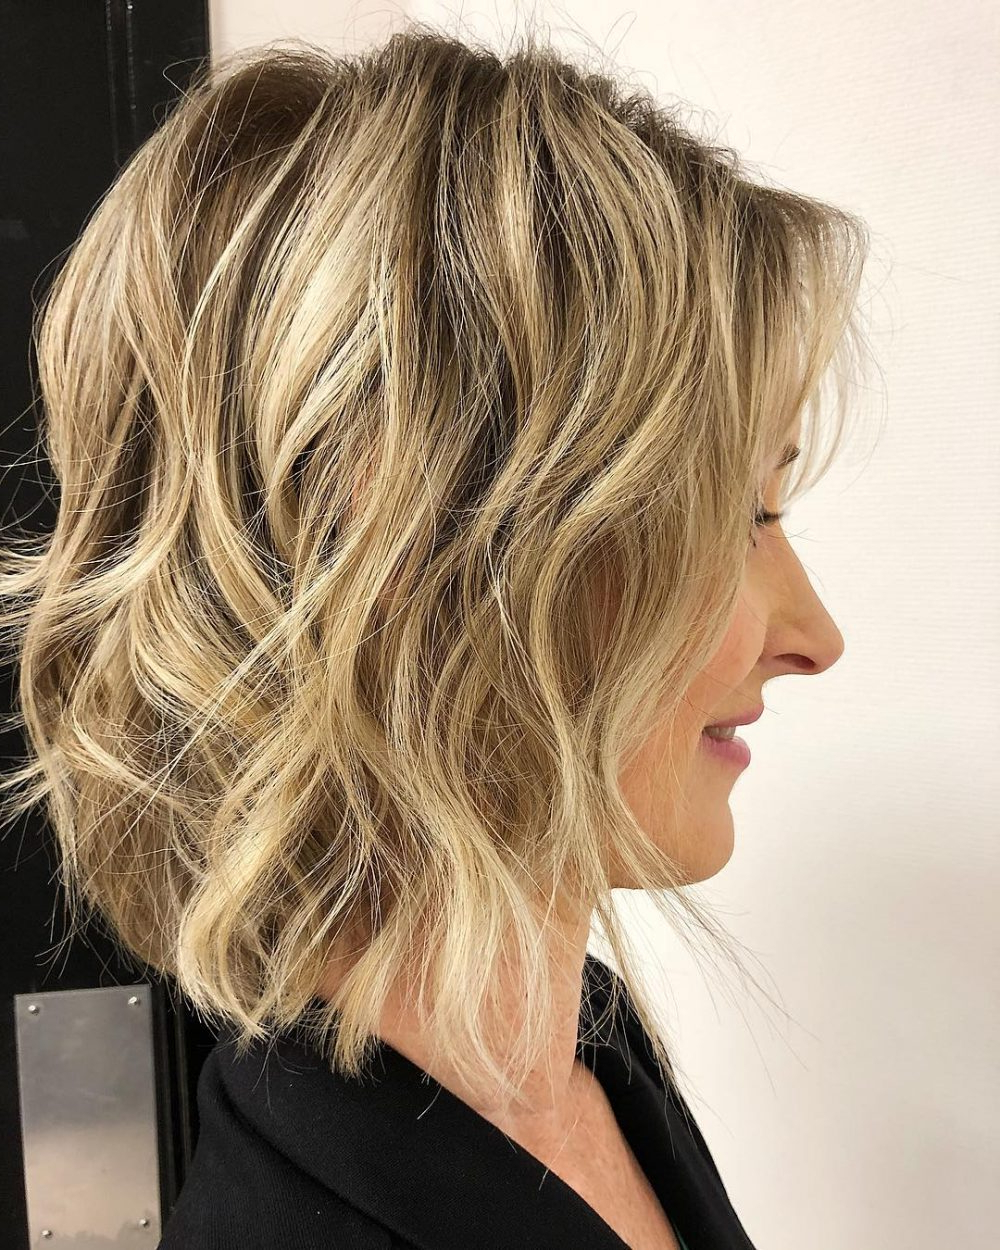 43 Perfect Short Hairstyles For Fine Hair In 2018 With Short Wavy Hairstyles For Fine Hair (View 3 of 25)